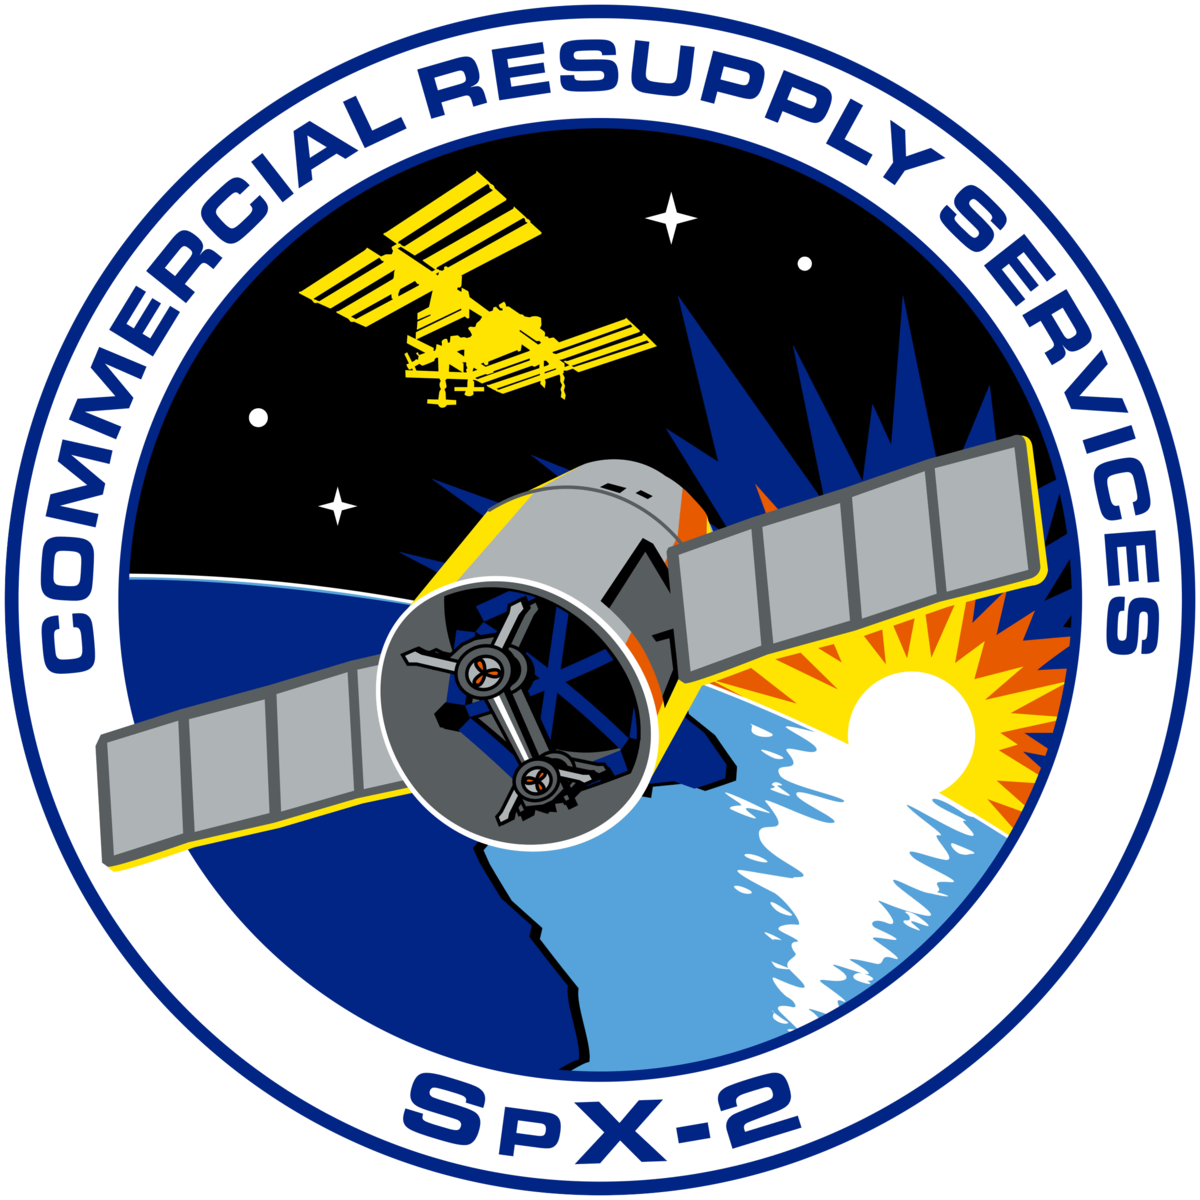 spacex crs 4 logo - photo #9